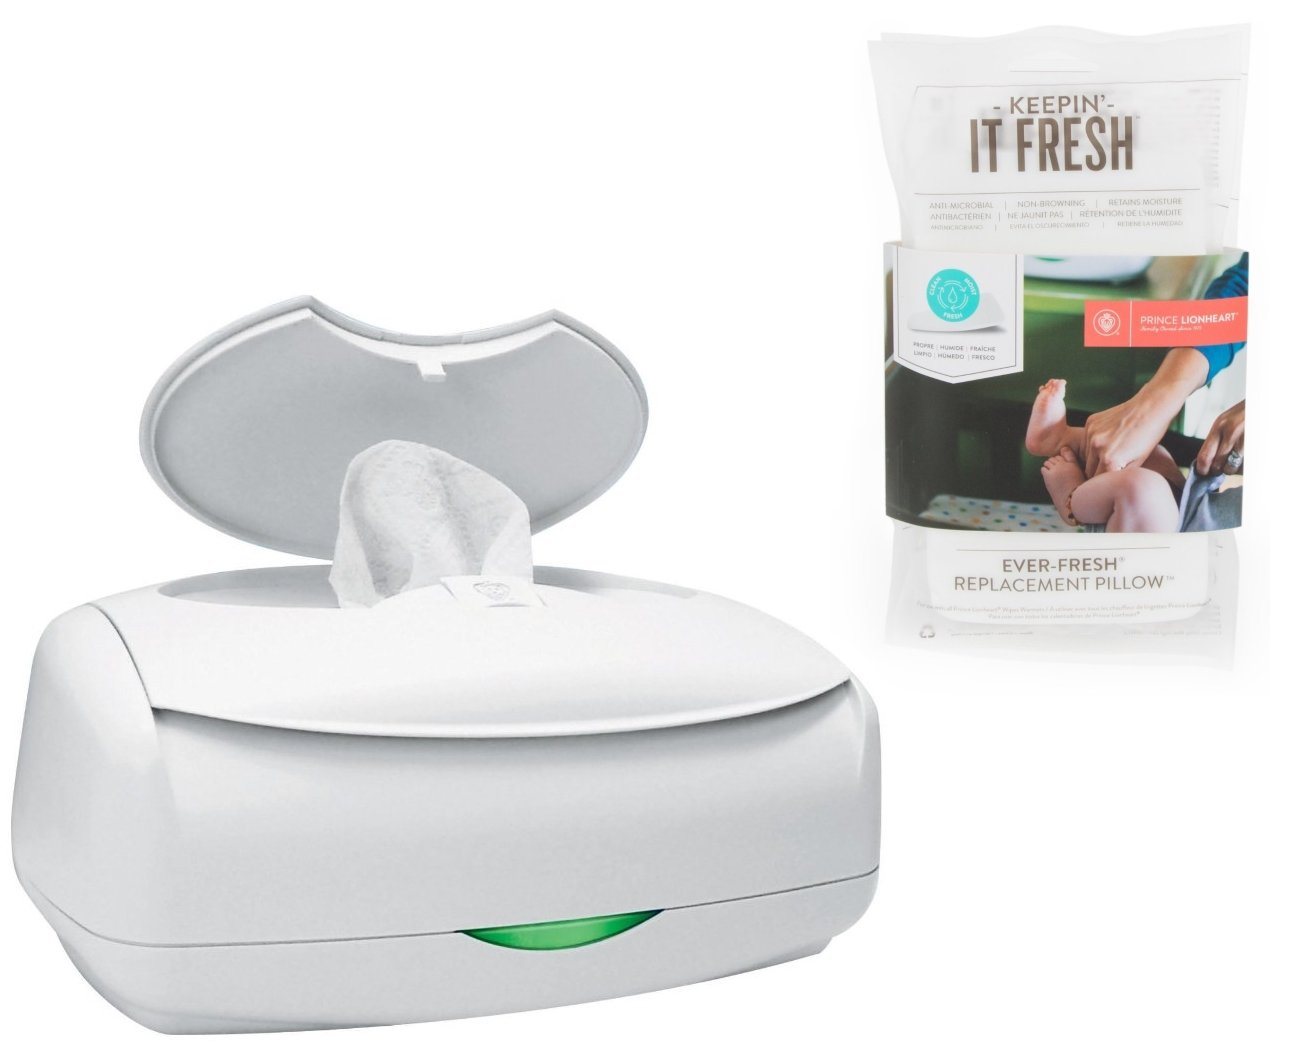 Prince Lionheart Ultimate Wipes Warmer & Replacement Pillows